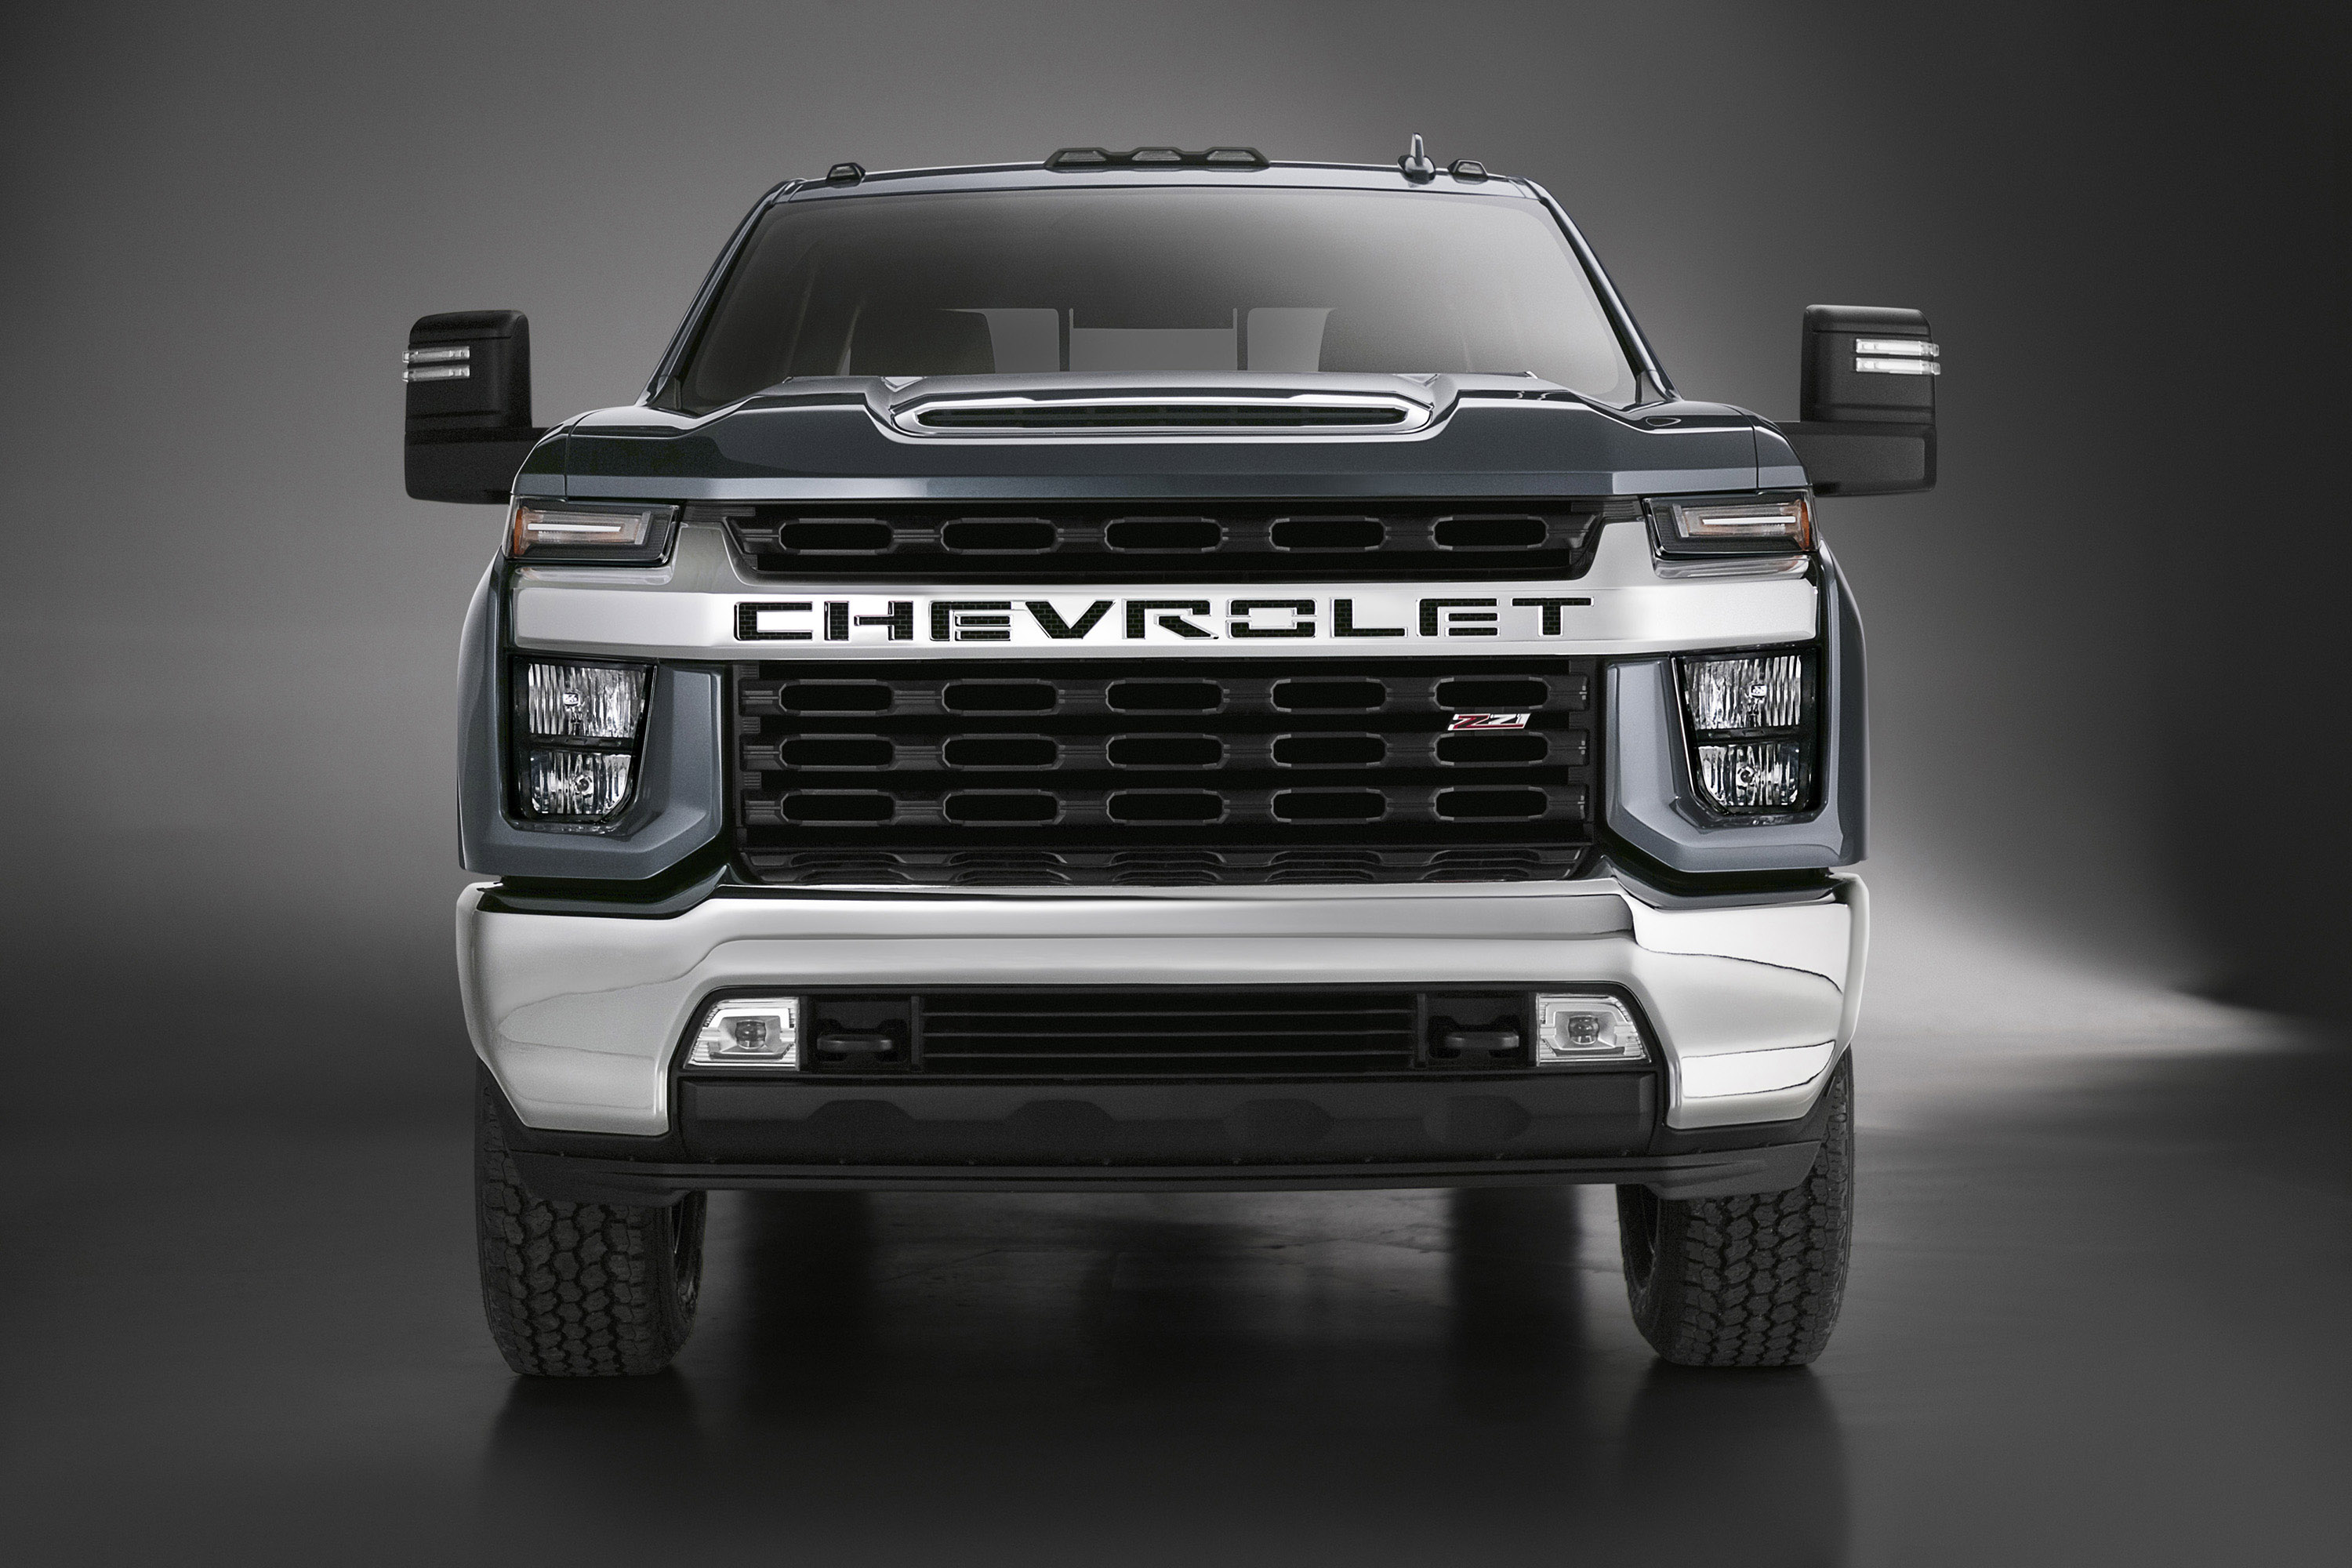 Chevy reveals new Silverado HD models